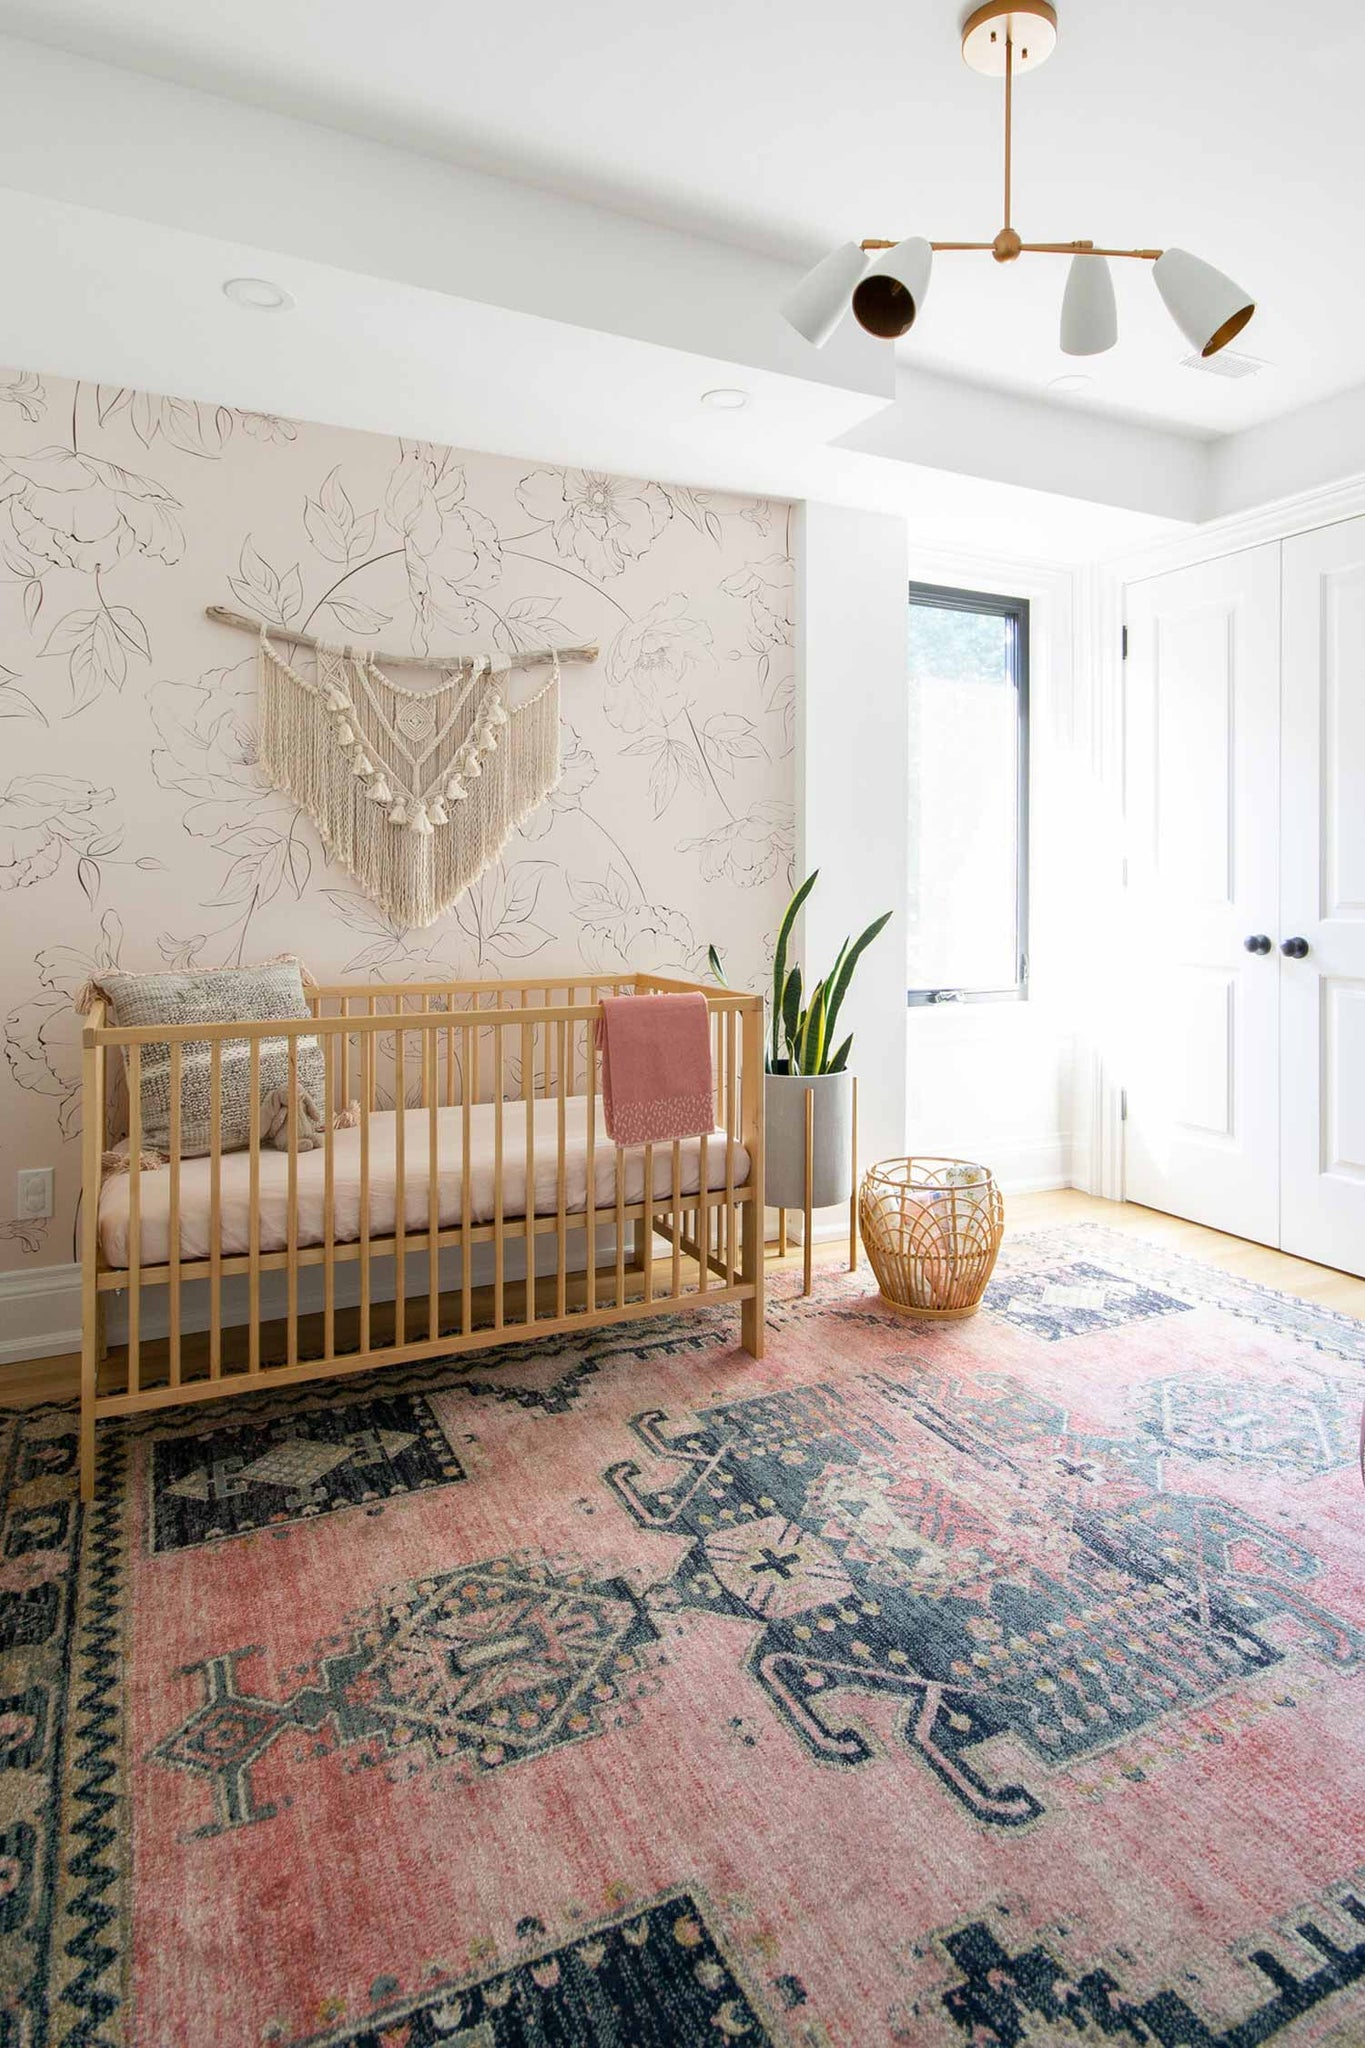 Modern and girly bohemian style nursery interior with floral removable wallpaper behind crib